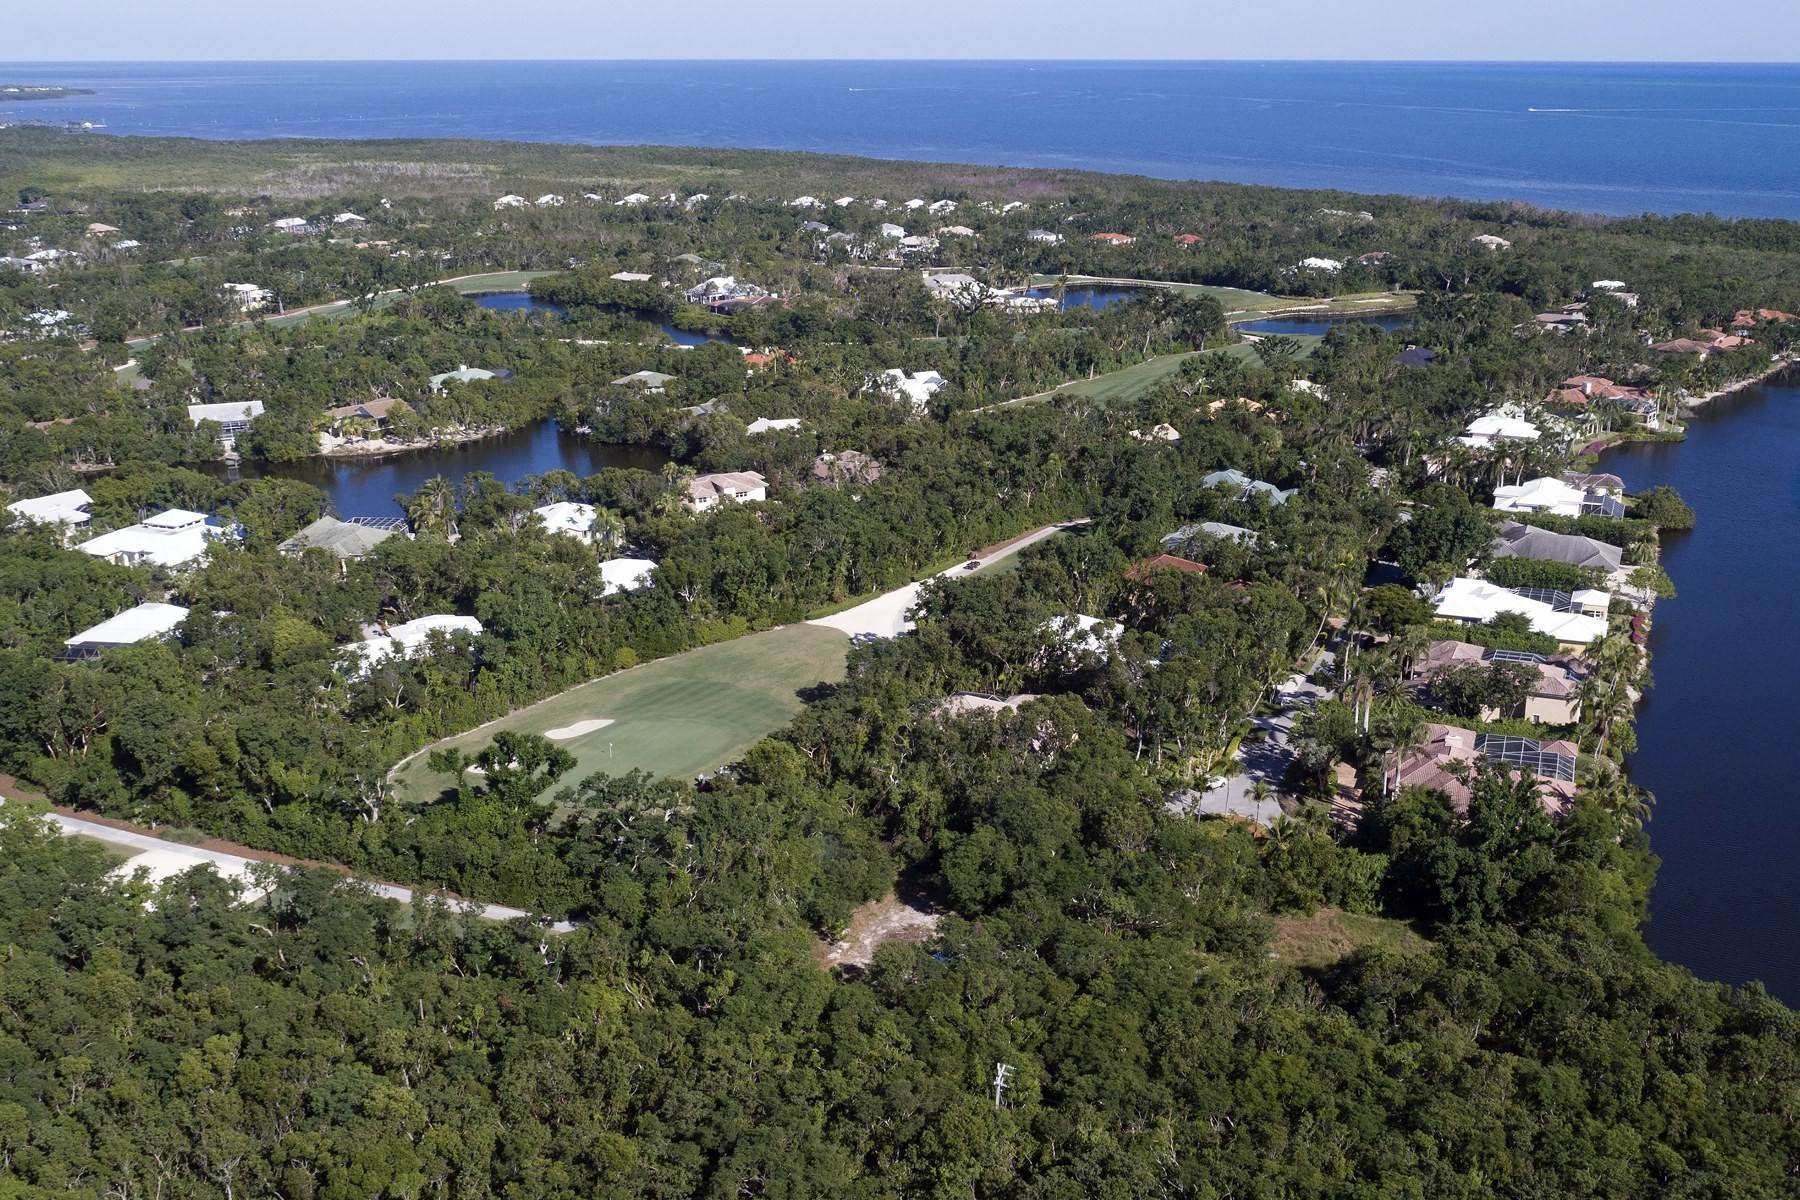 Land for Sale at 45 Thatch Palm Way, Key Largo, FL 45 Thatch Palm Way Key Largo, Florida 33037 United States